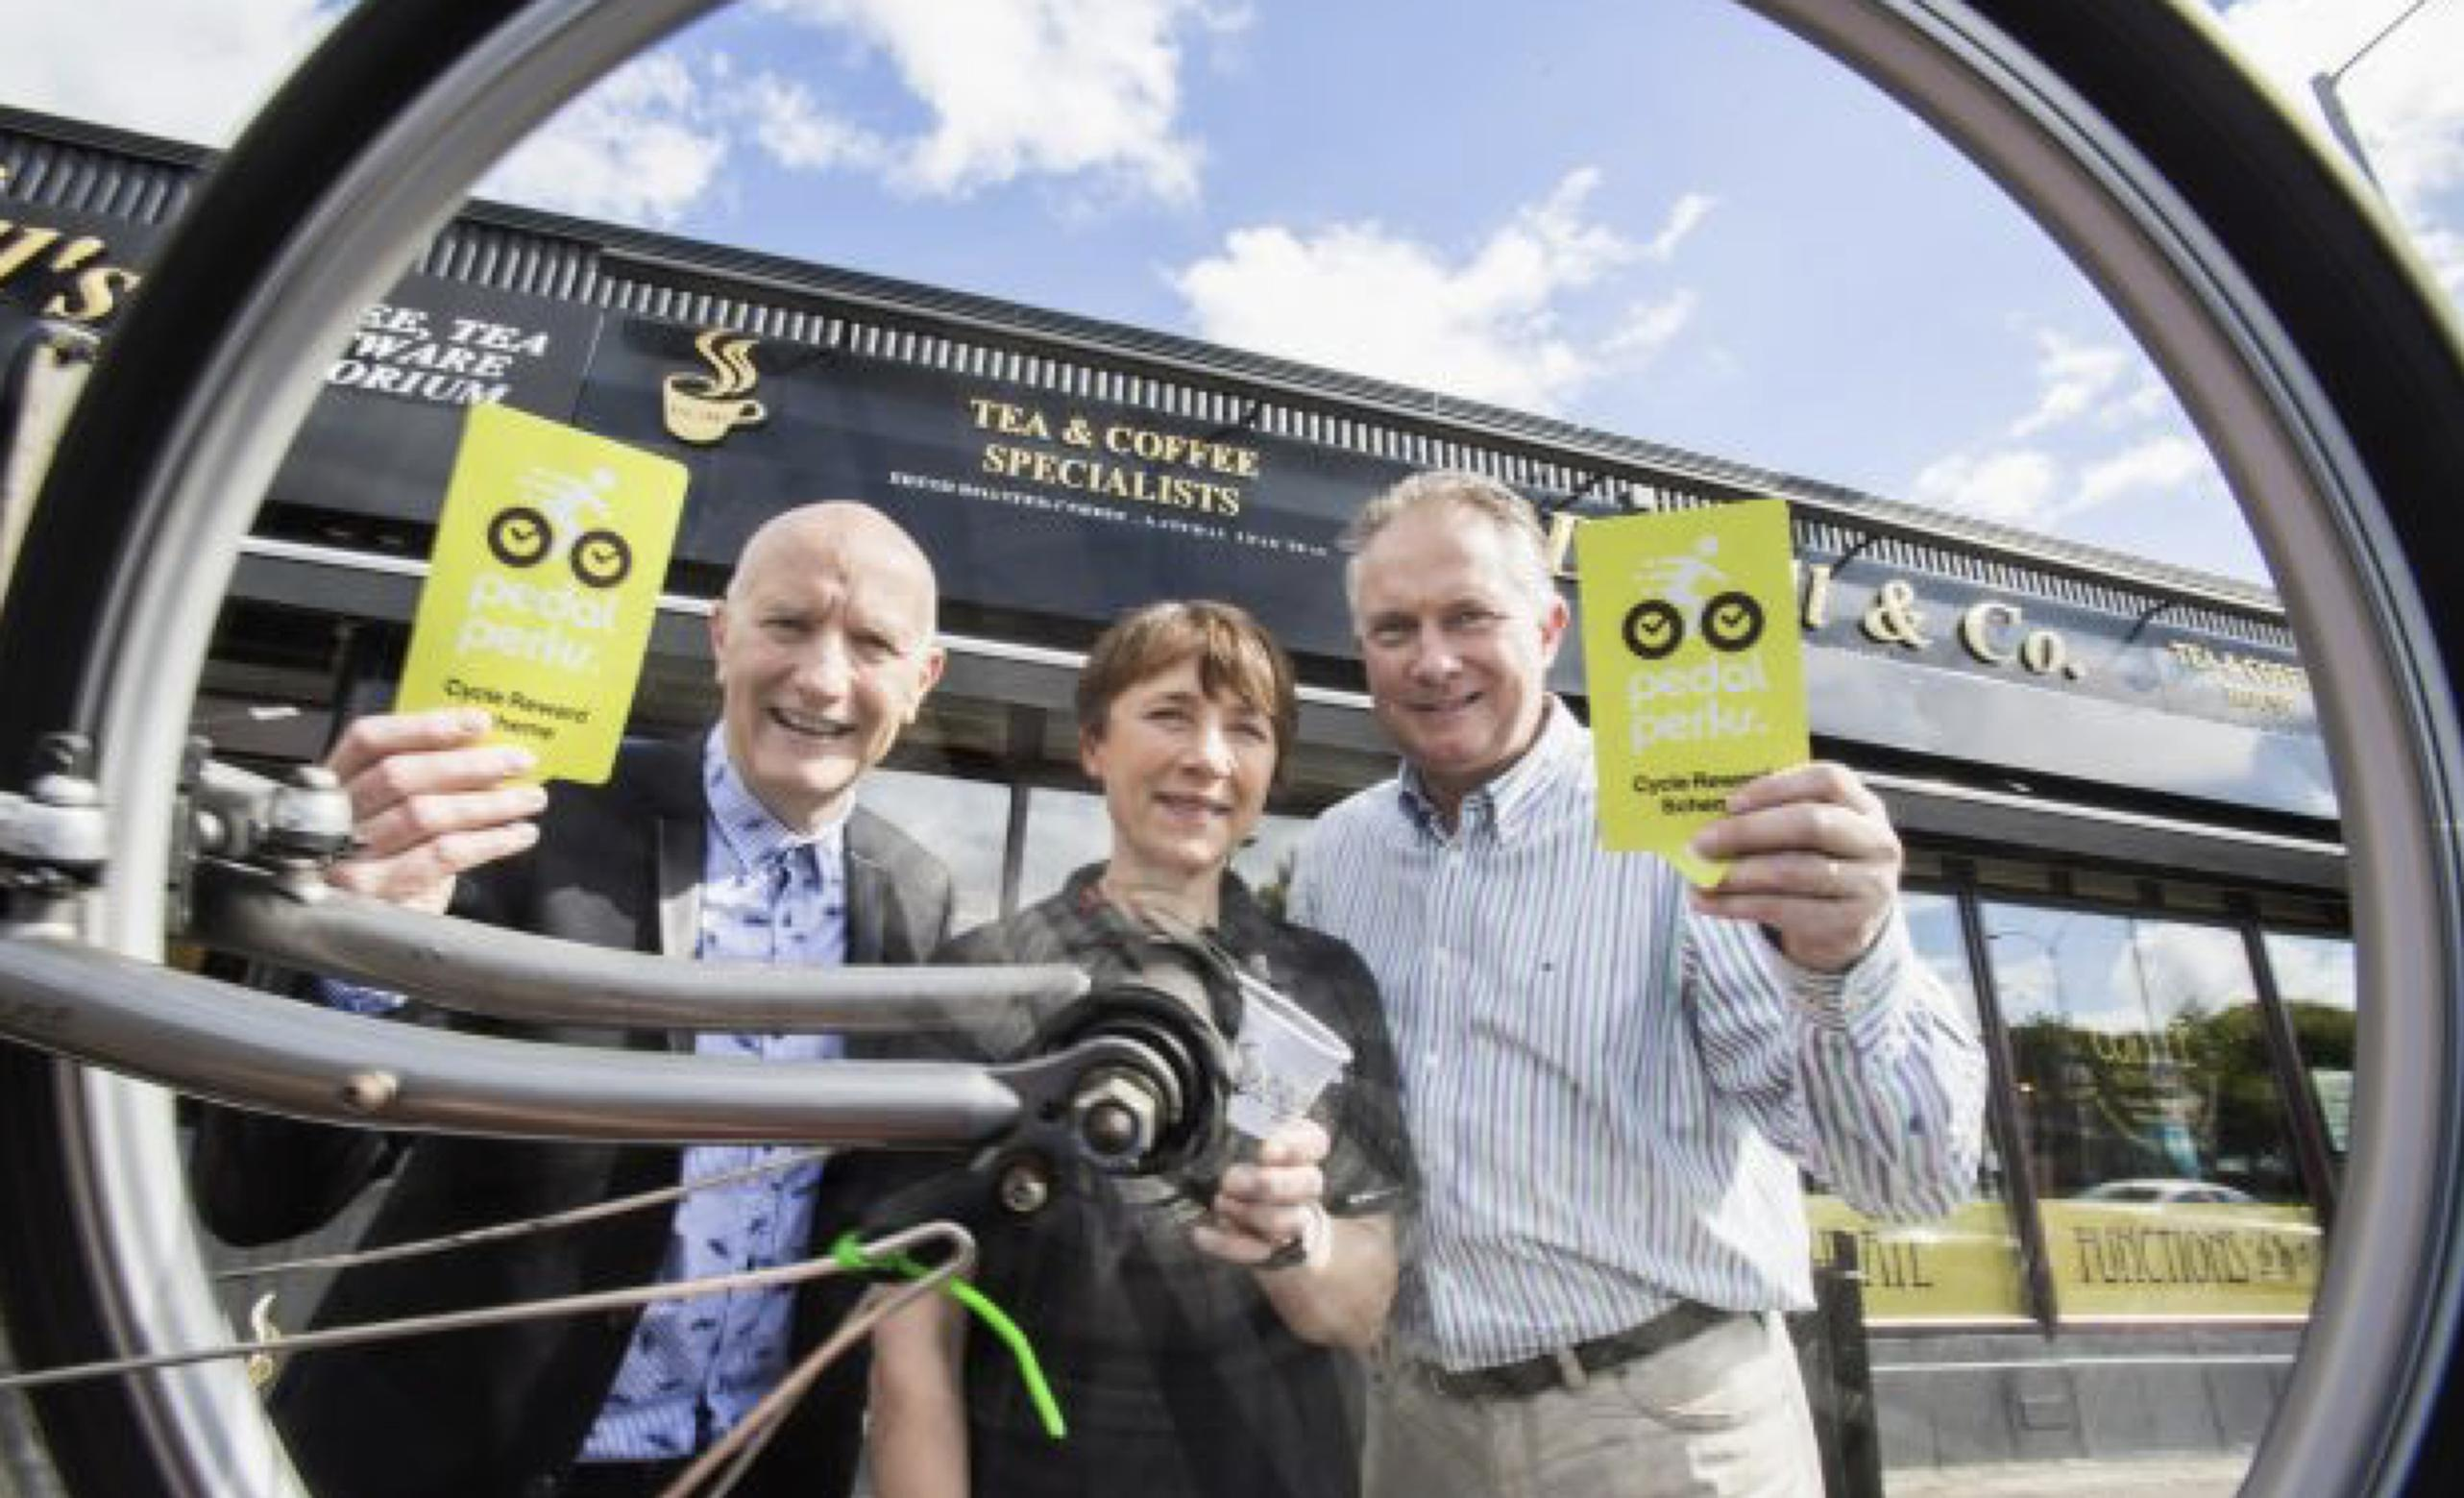 Colin Neill of Hospitality Ulster, Pamela Grove-White of Sustrans and Robert Bell, owner of SD Bells café in East Belfast launch the Pedal Perks cycling loyalty scheme